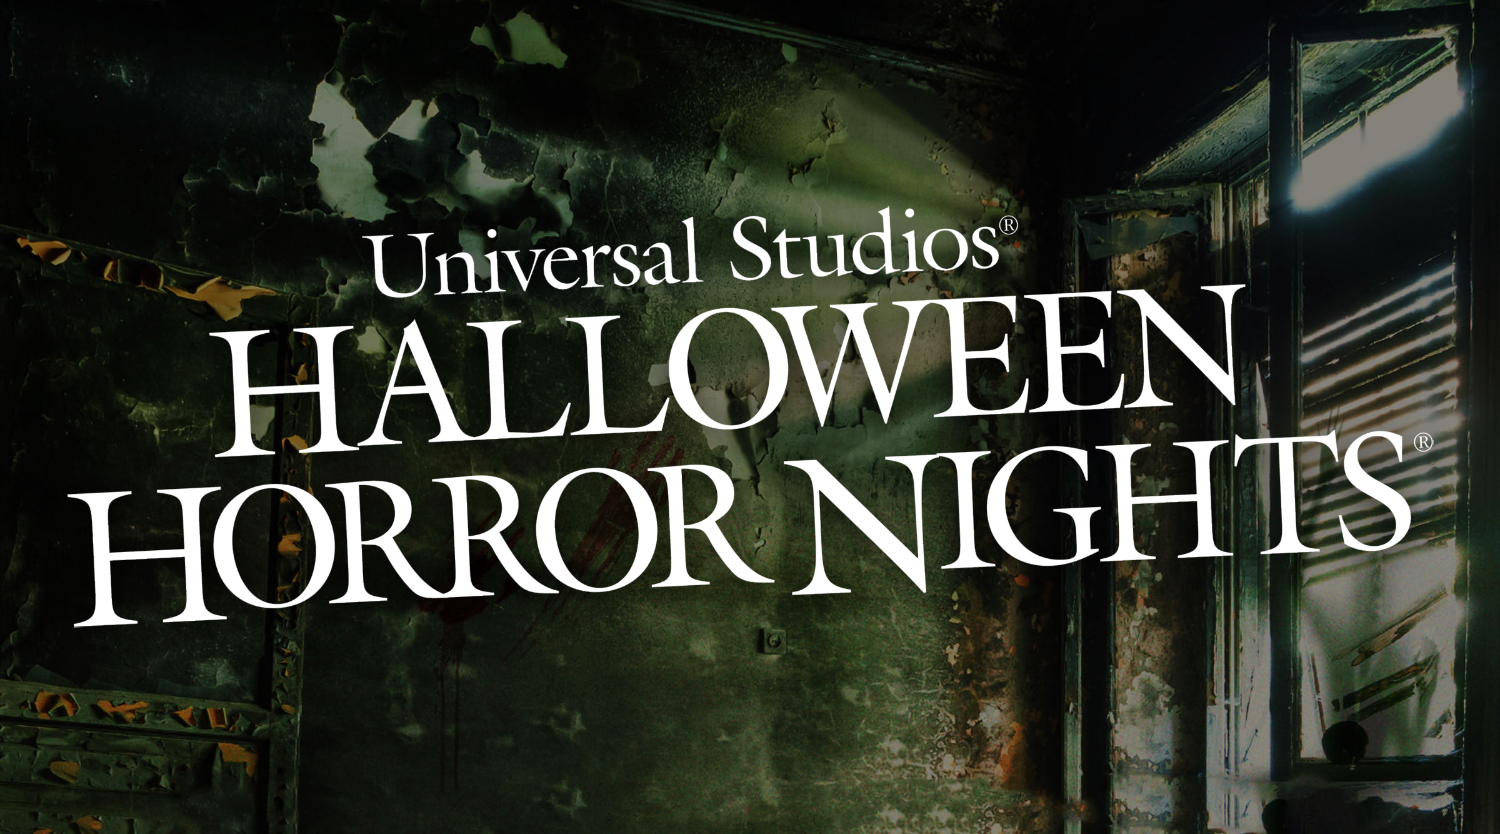 Universal Studio Hollywood Halloween Horror Nights 2020 Universal Studios Hollywood release Halloween Horror Nights